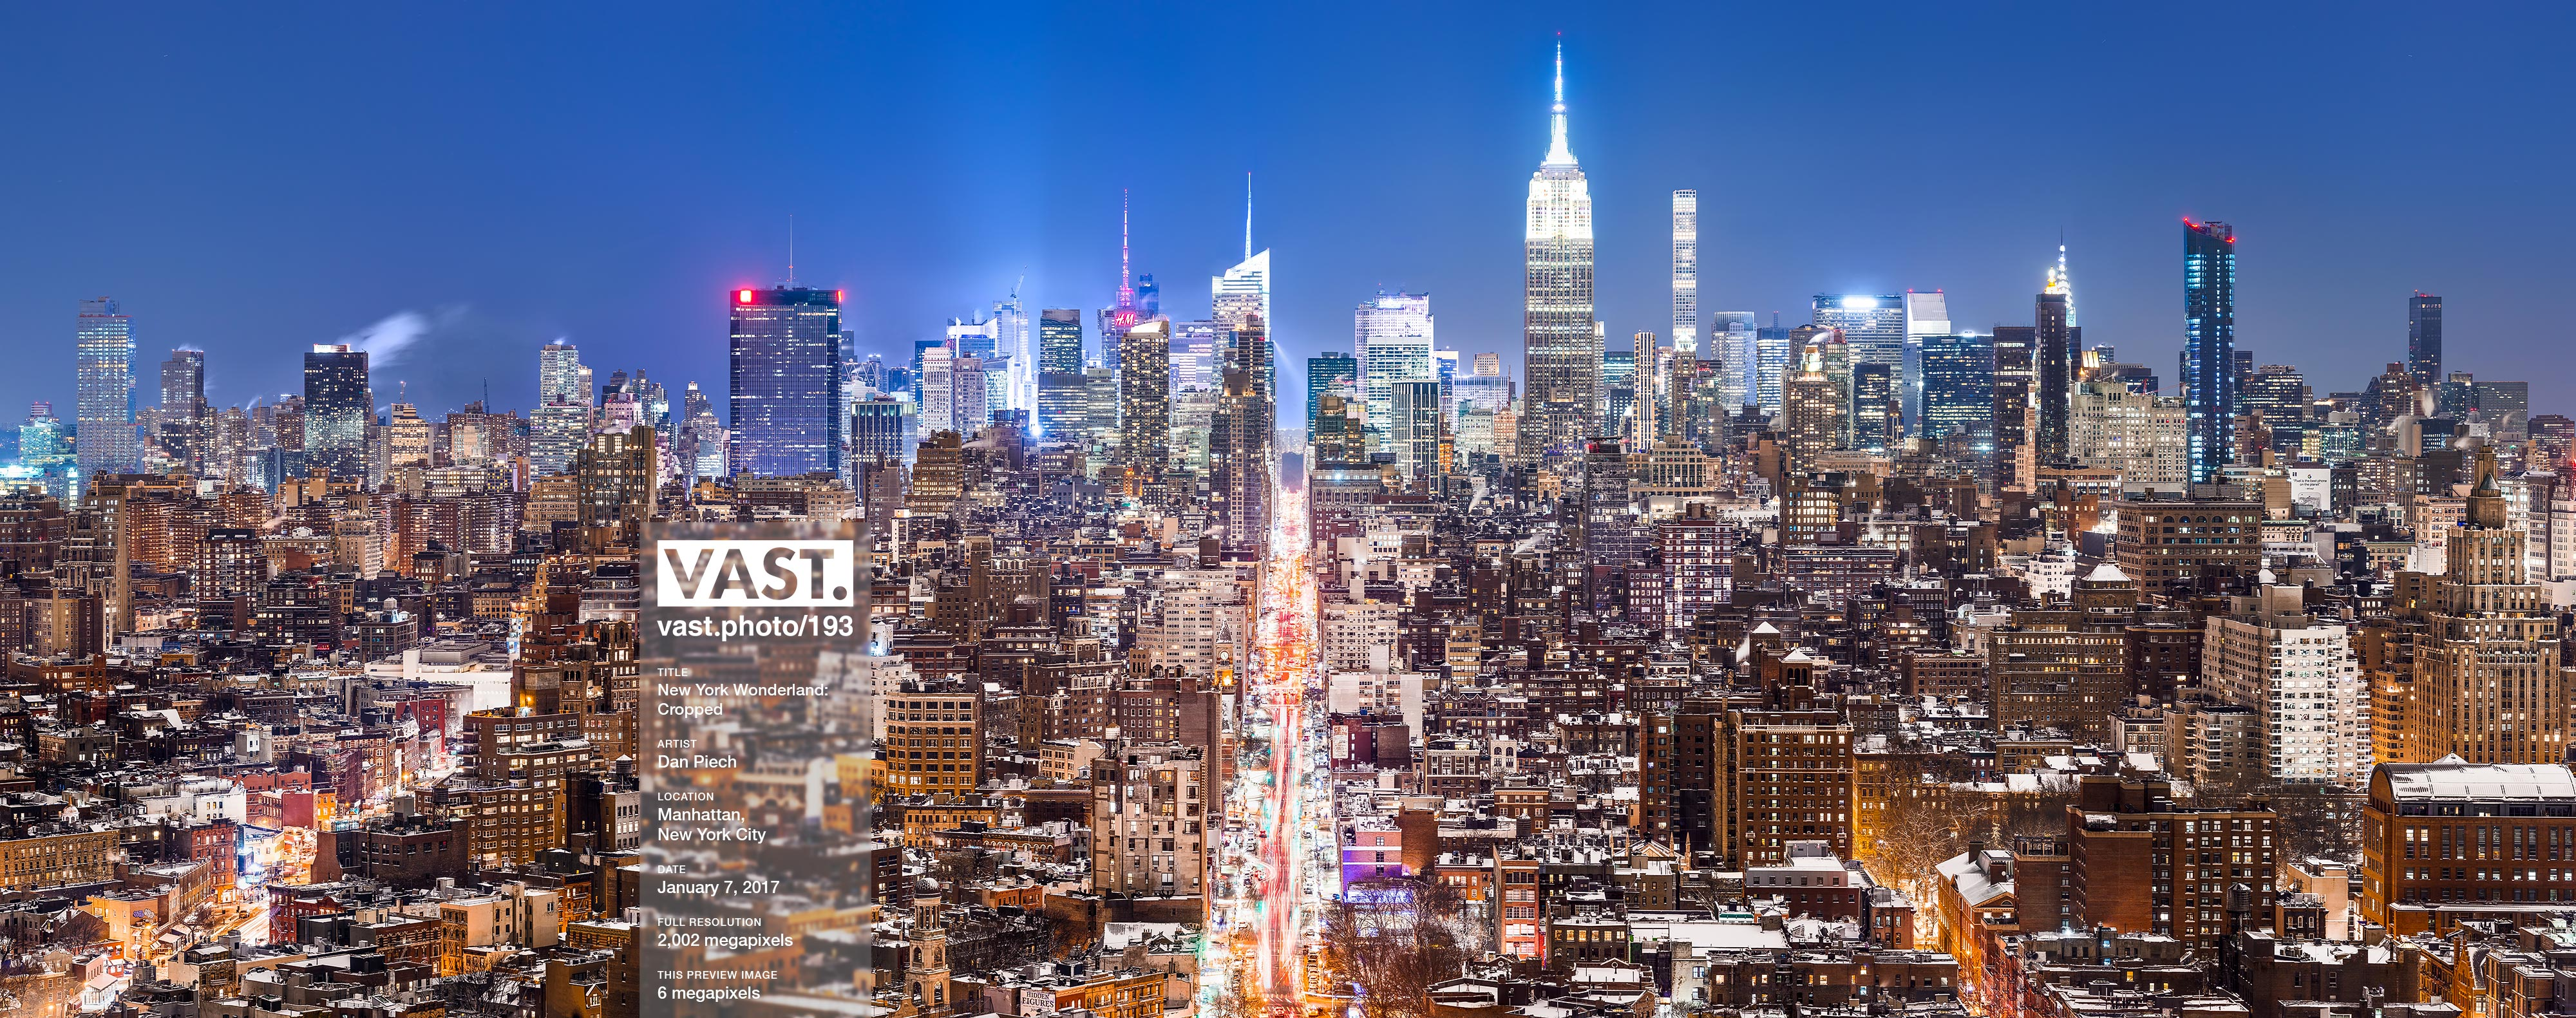 NYC Night Skyline Photos: High-Res Large-Format Prints - VAST